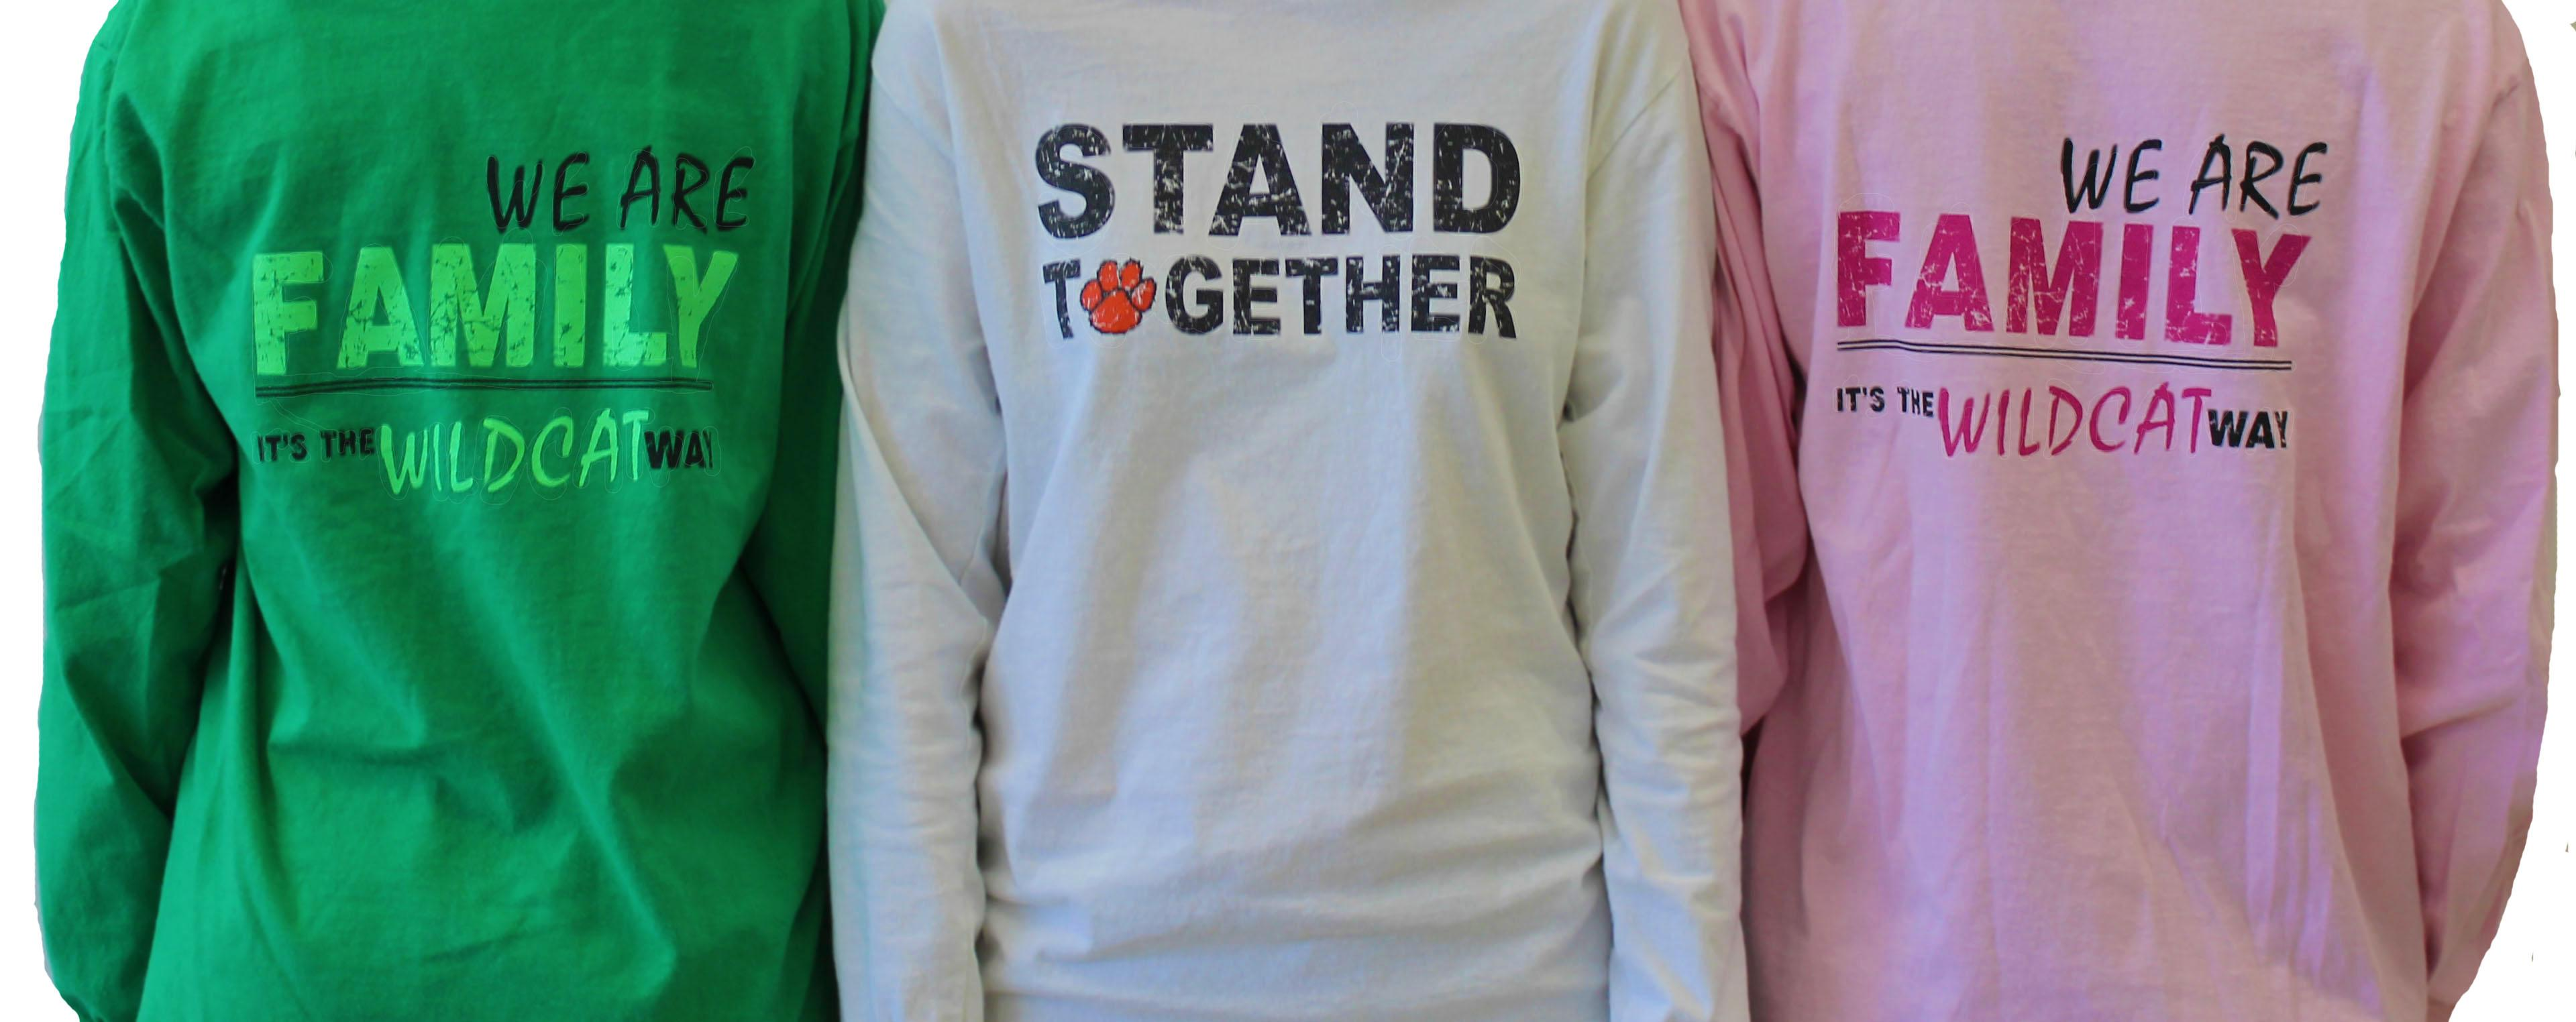 Ever since their first appearance in 2014, the Stand Together t-shirts have become popular in the LHS community. Worn by students and faculty alike, they symbolize that LHS stands together.